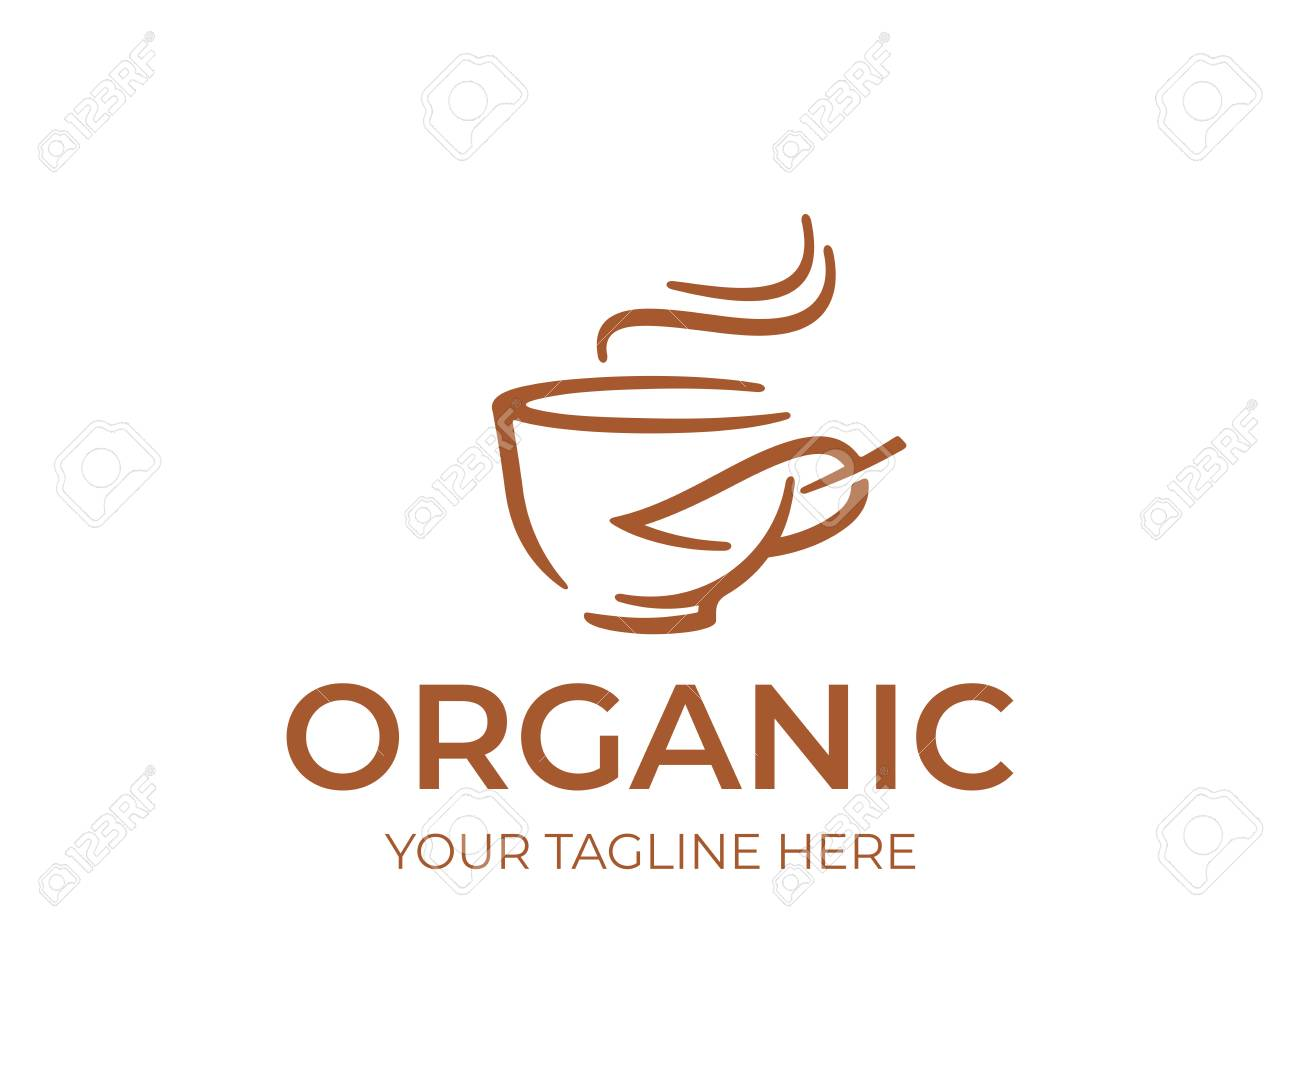 Organic cafe logo design  Coffee cup and leaf vector design